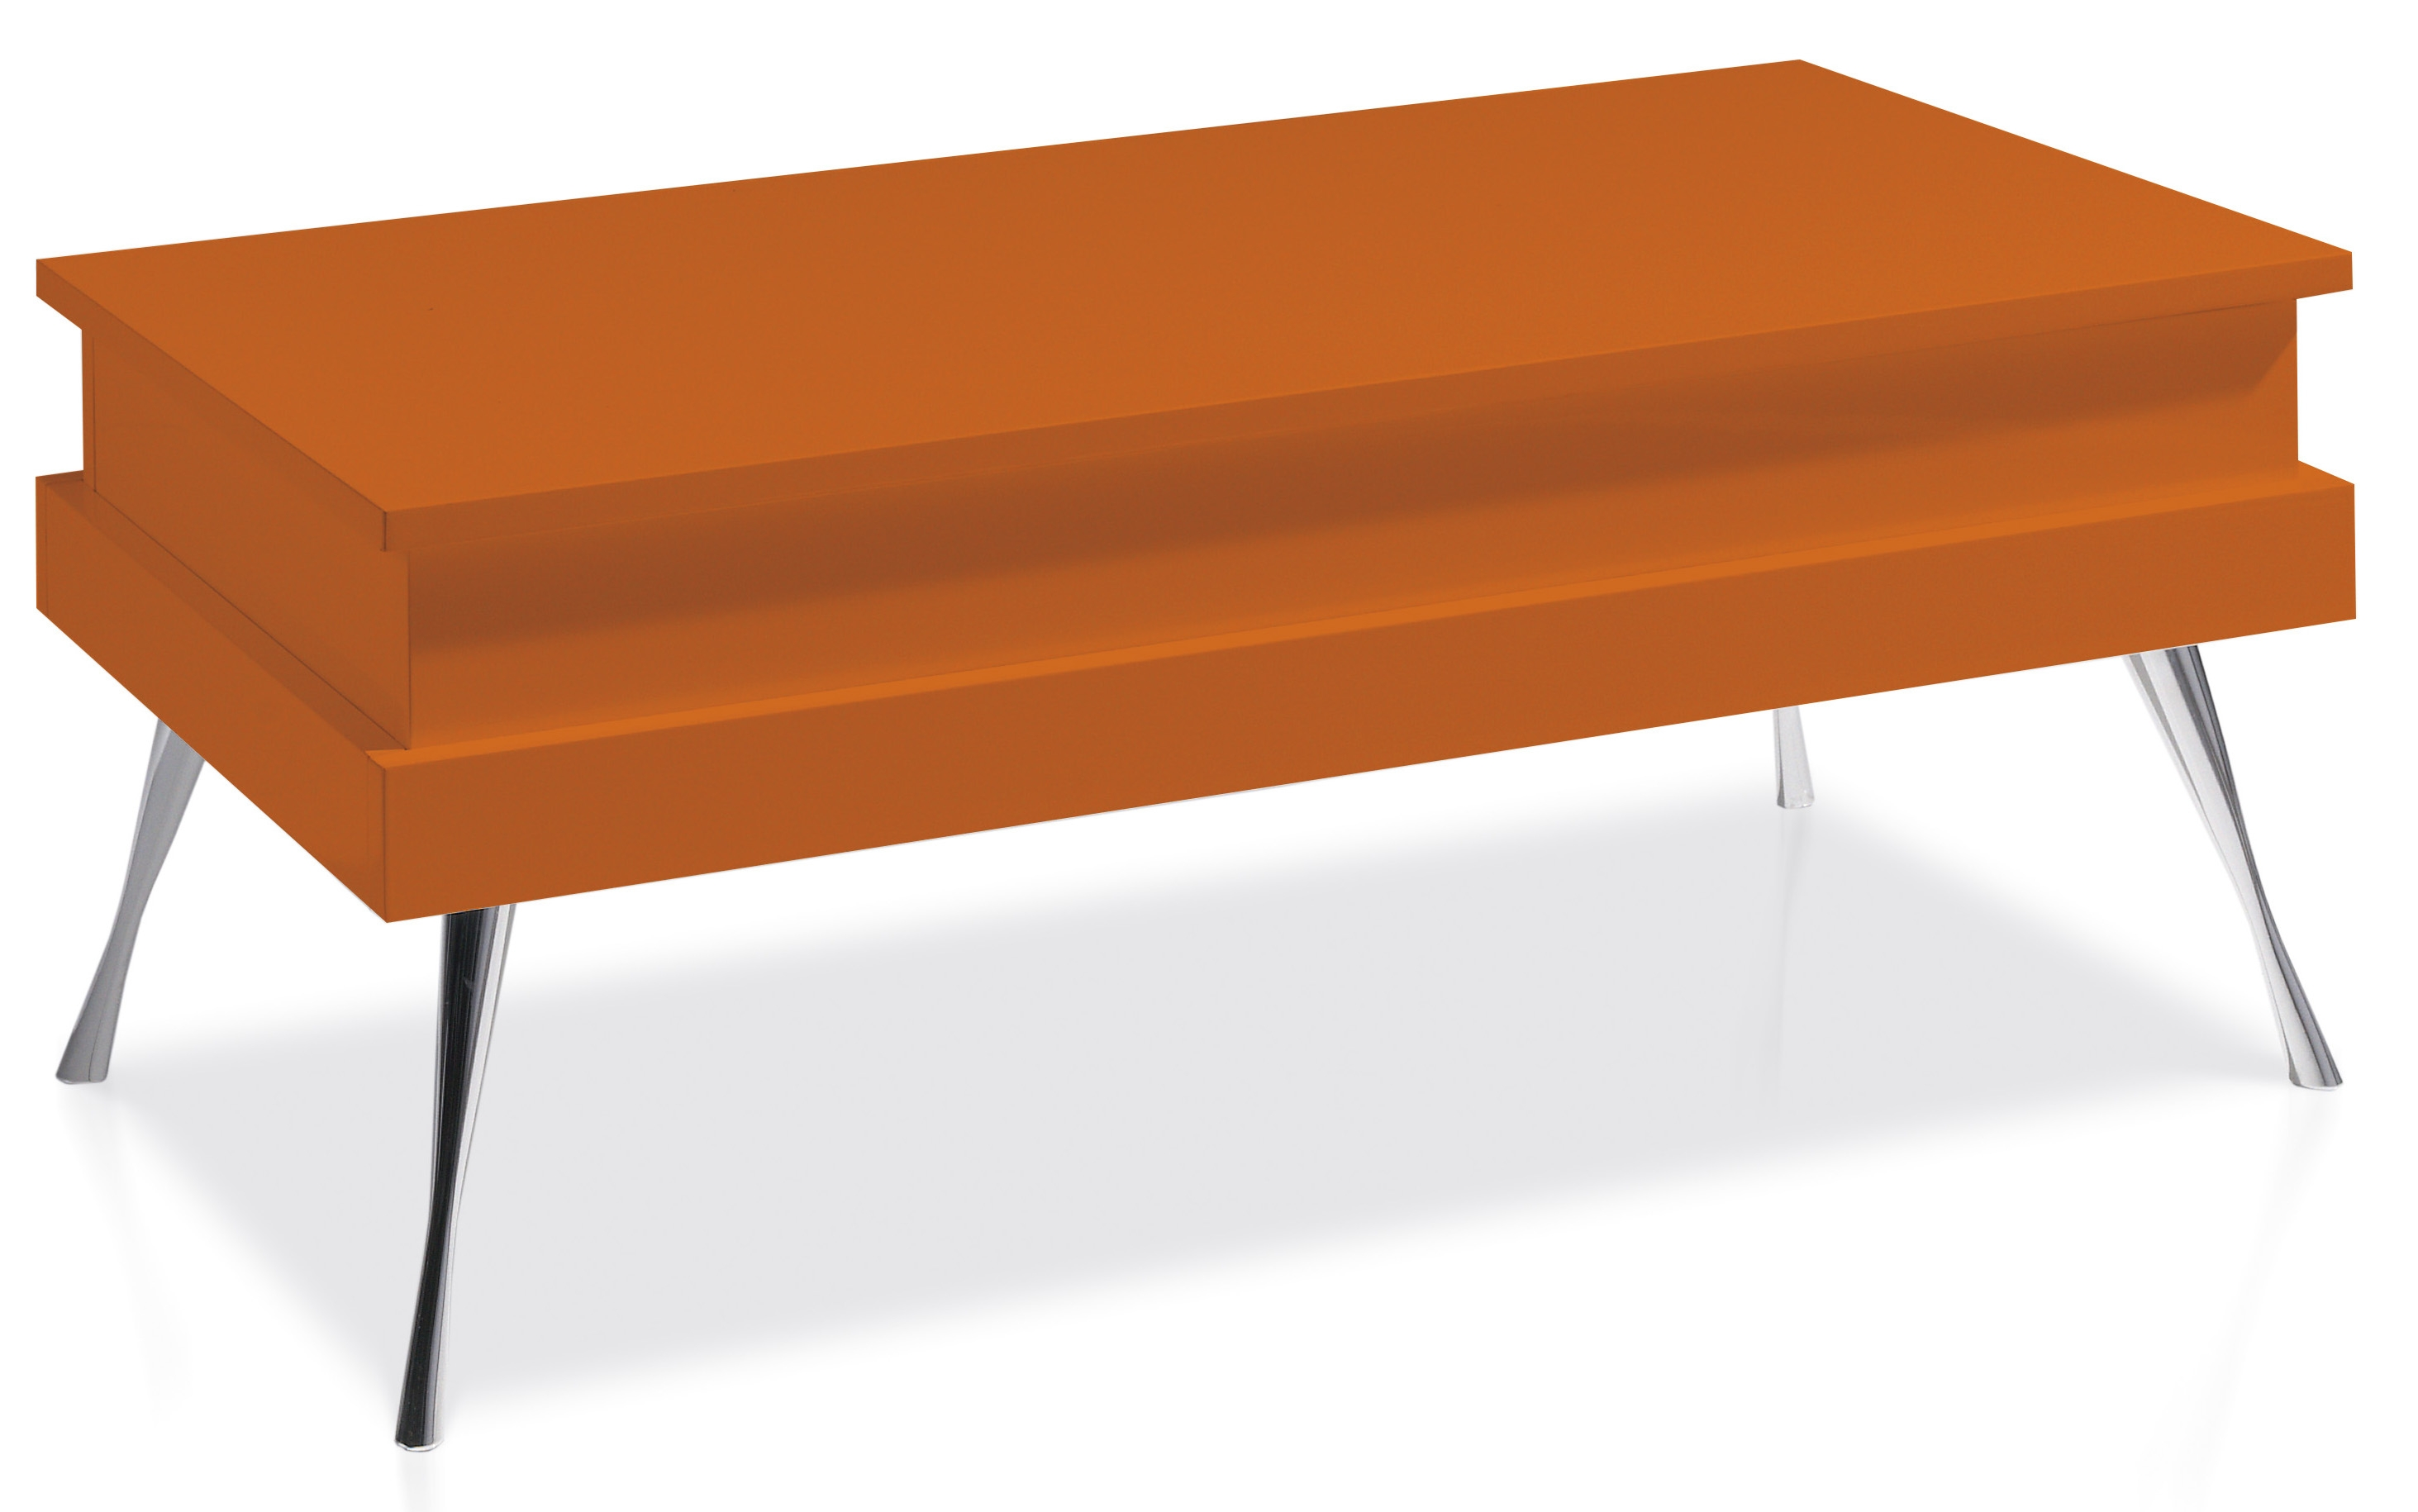 table basse relevable laqu e orange pied acier chrom. Black Bedroom Furniture Sets. Home Design Ideas